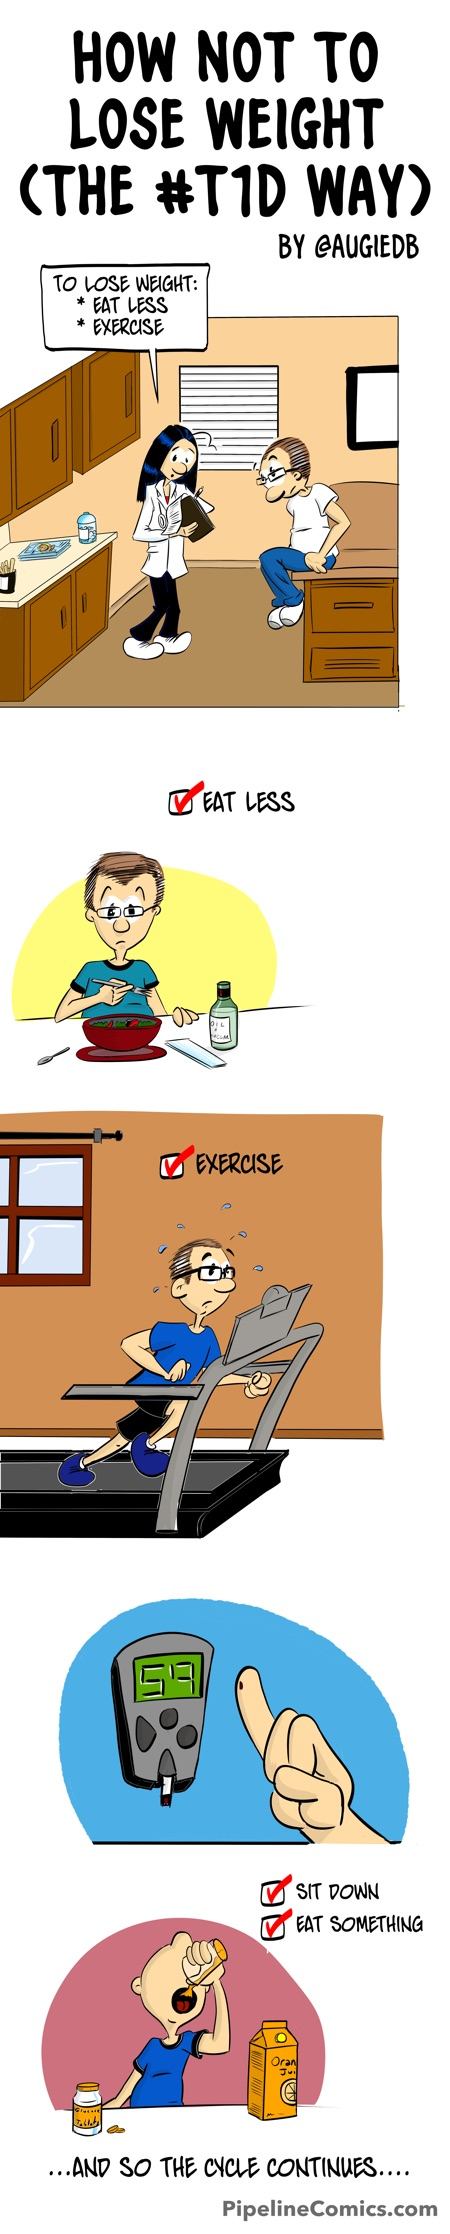 T1D Diabetes and Exercise. Eat less, Exercise More